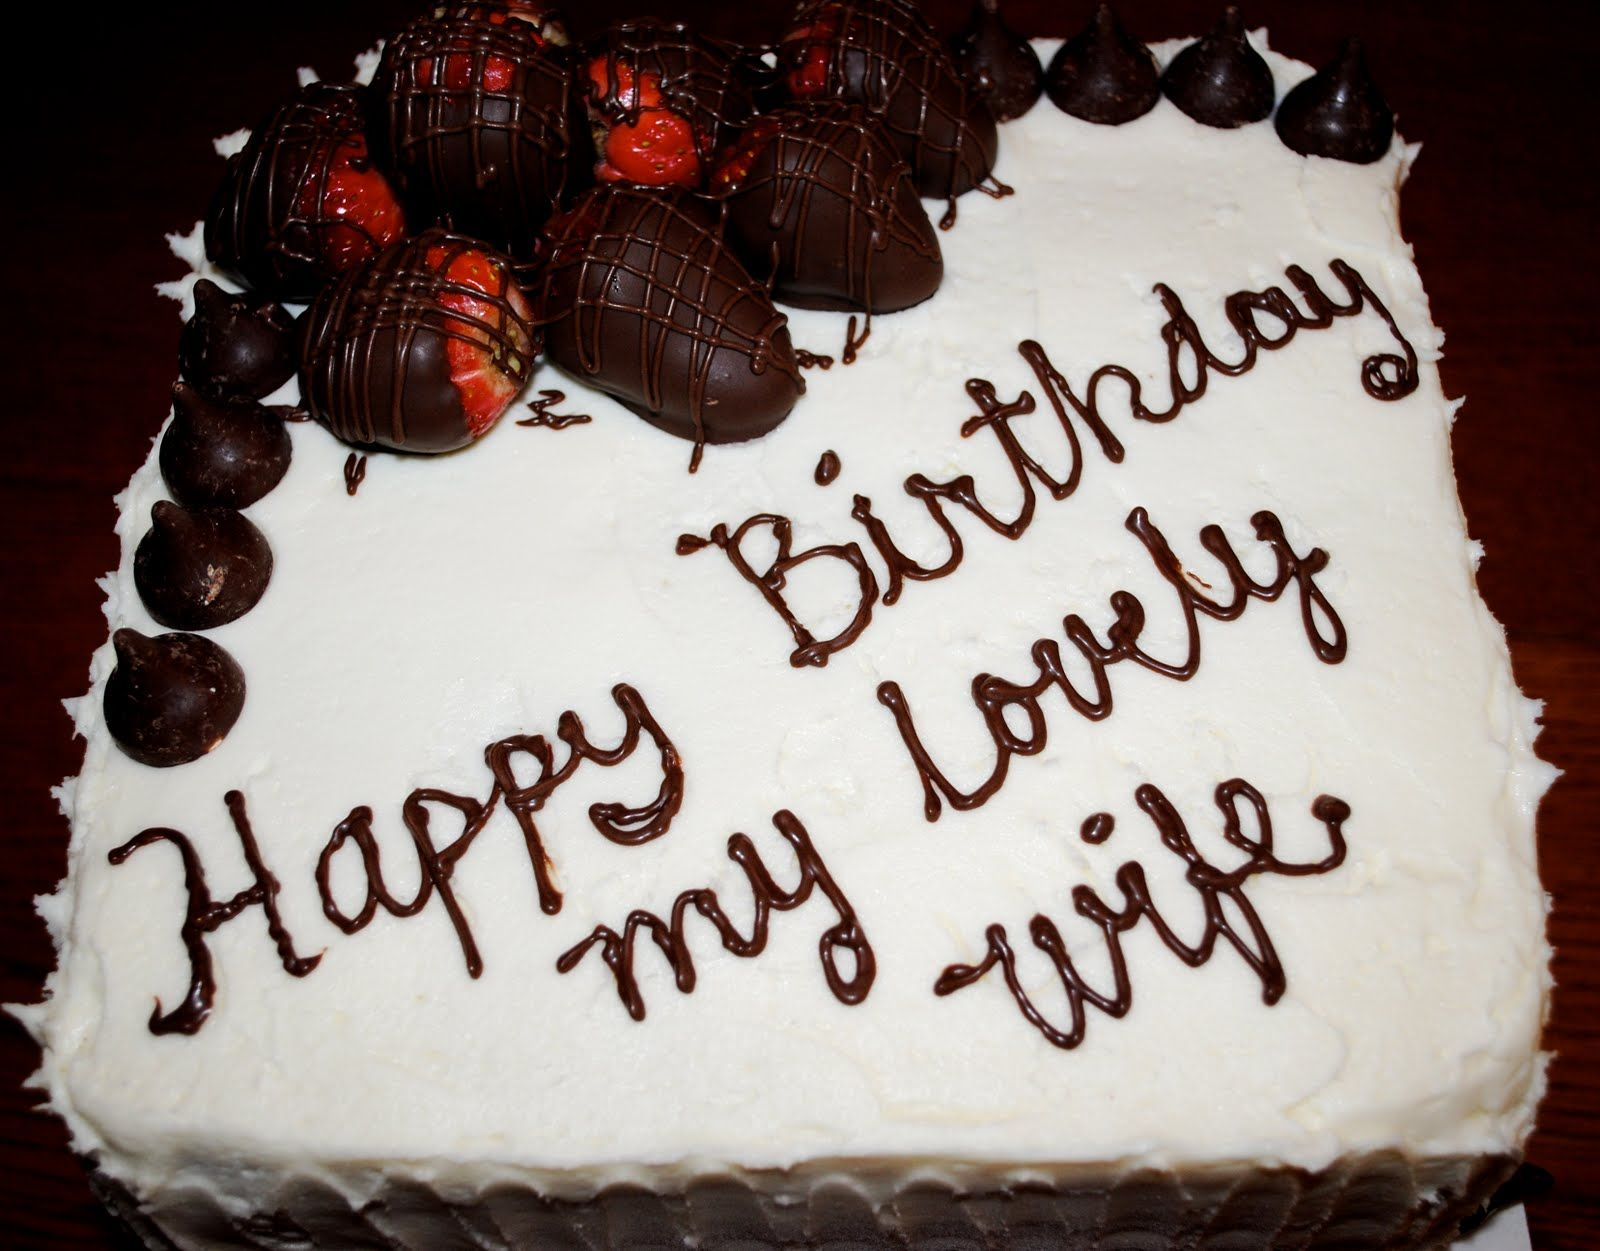 We Provide Hd Happy Birthday My Love Chocolate Cake Free For Your